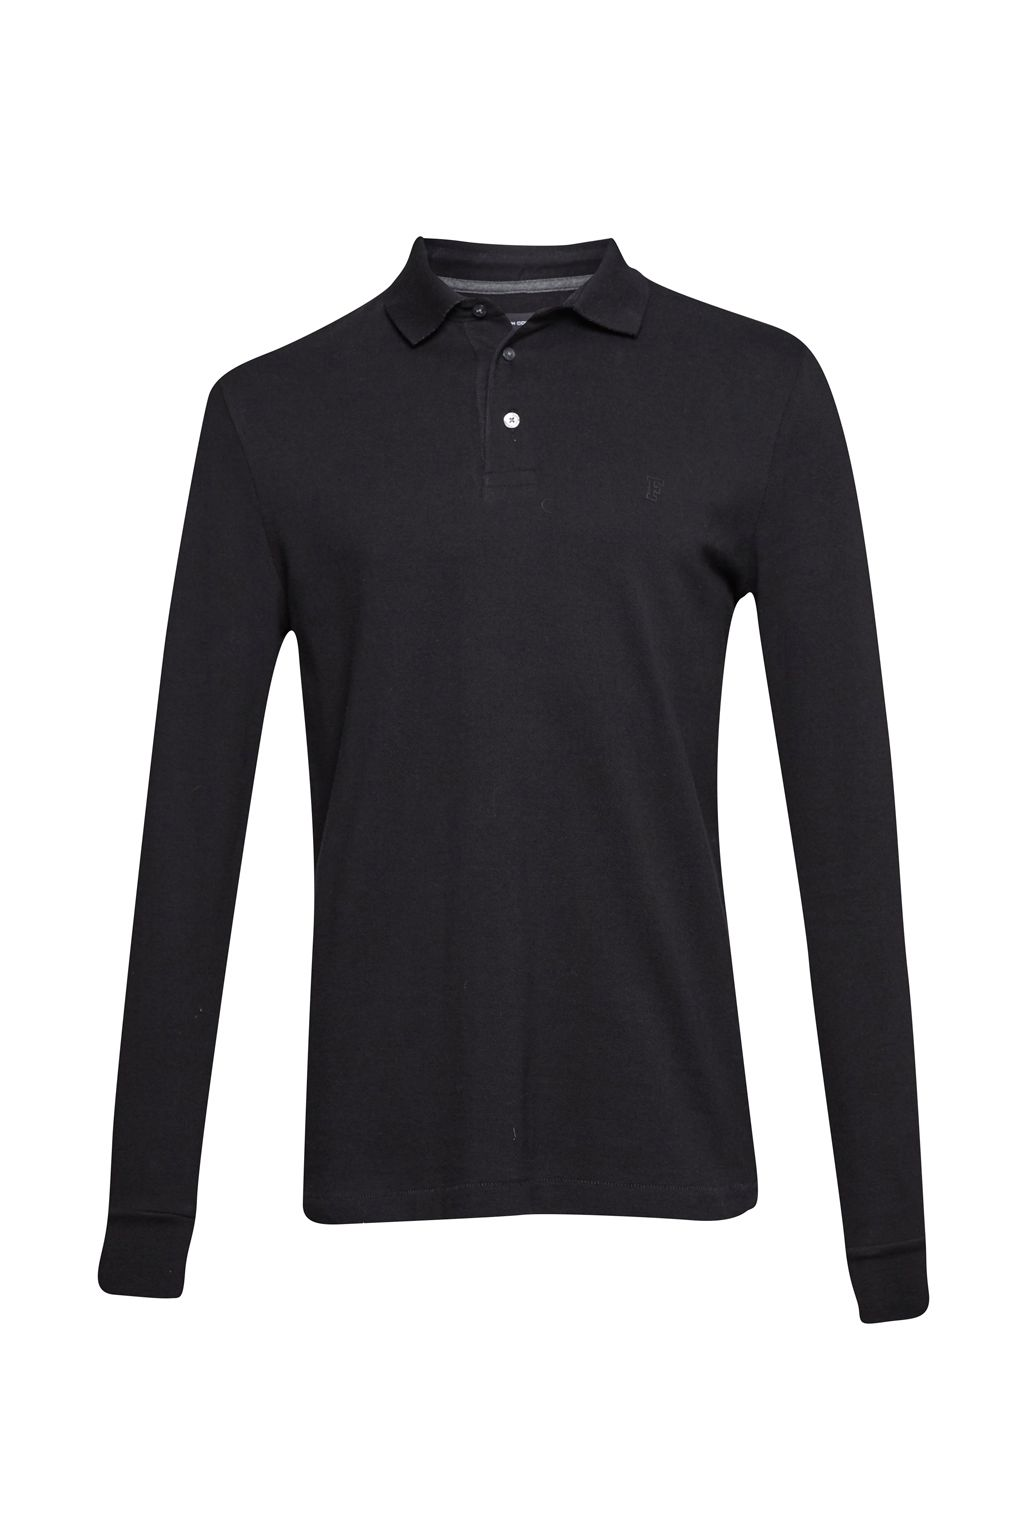 Men's French Connection Brunswick Long Sleeved Polo Shirt, Black